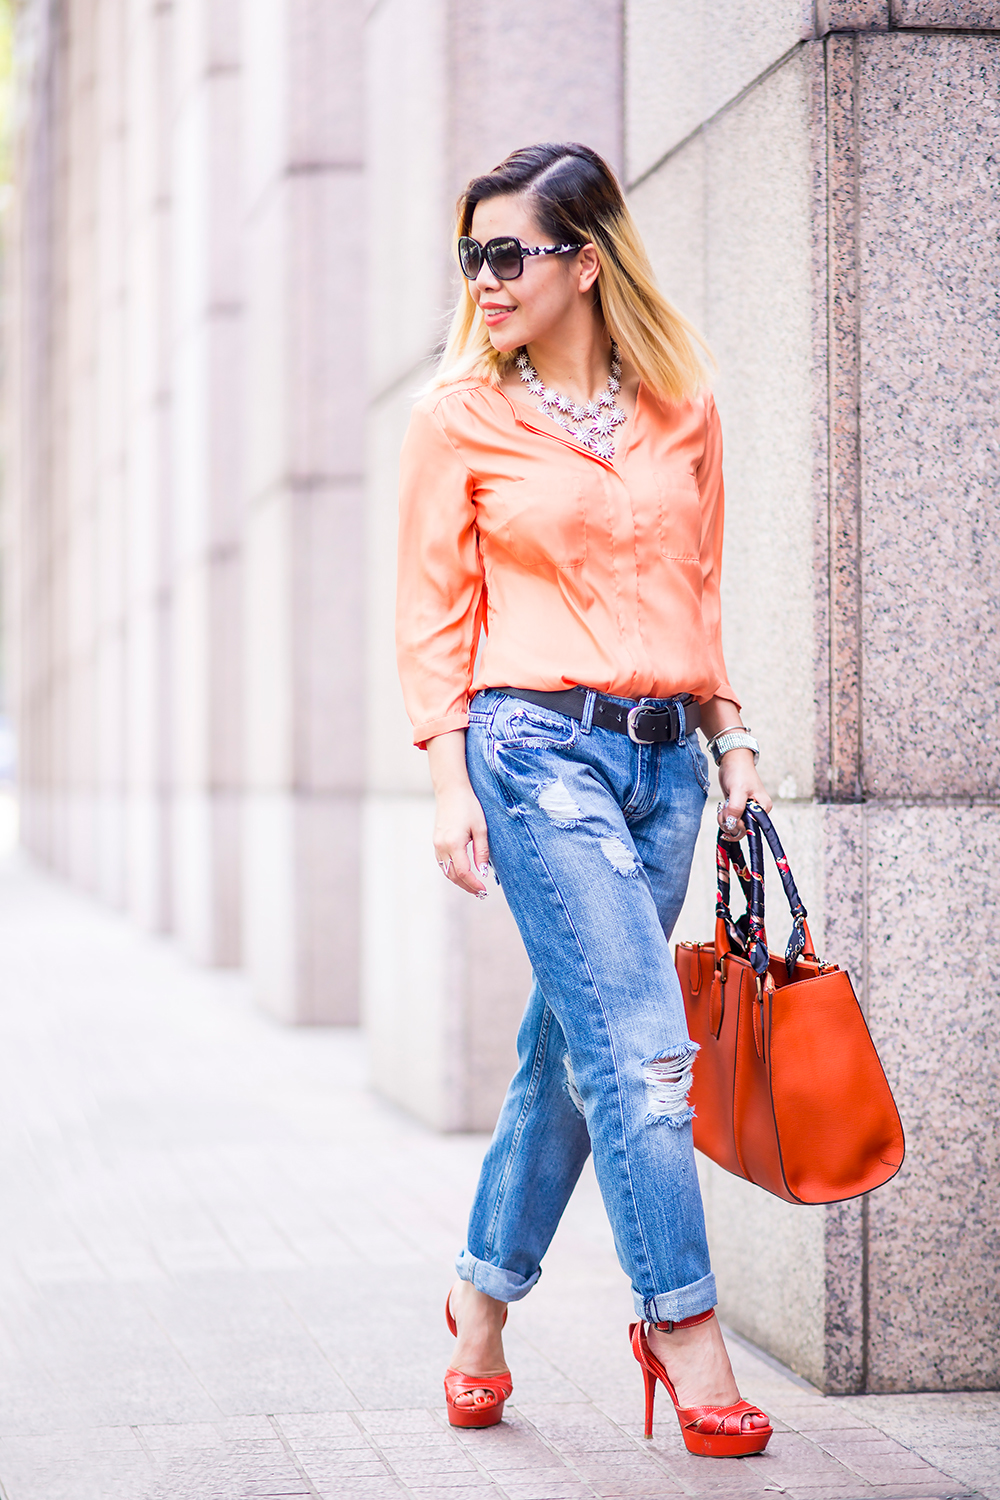 CrystalPhuong- Singapore Fashion Blog- A girl and her boyfriend jeans